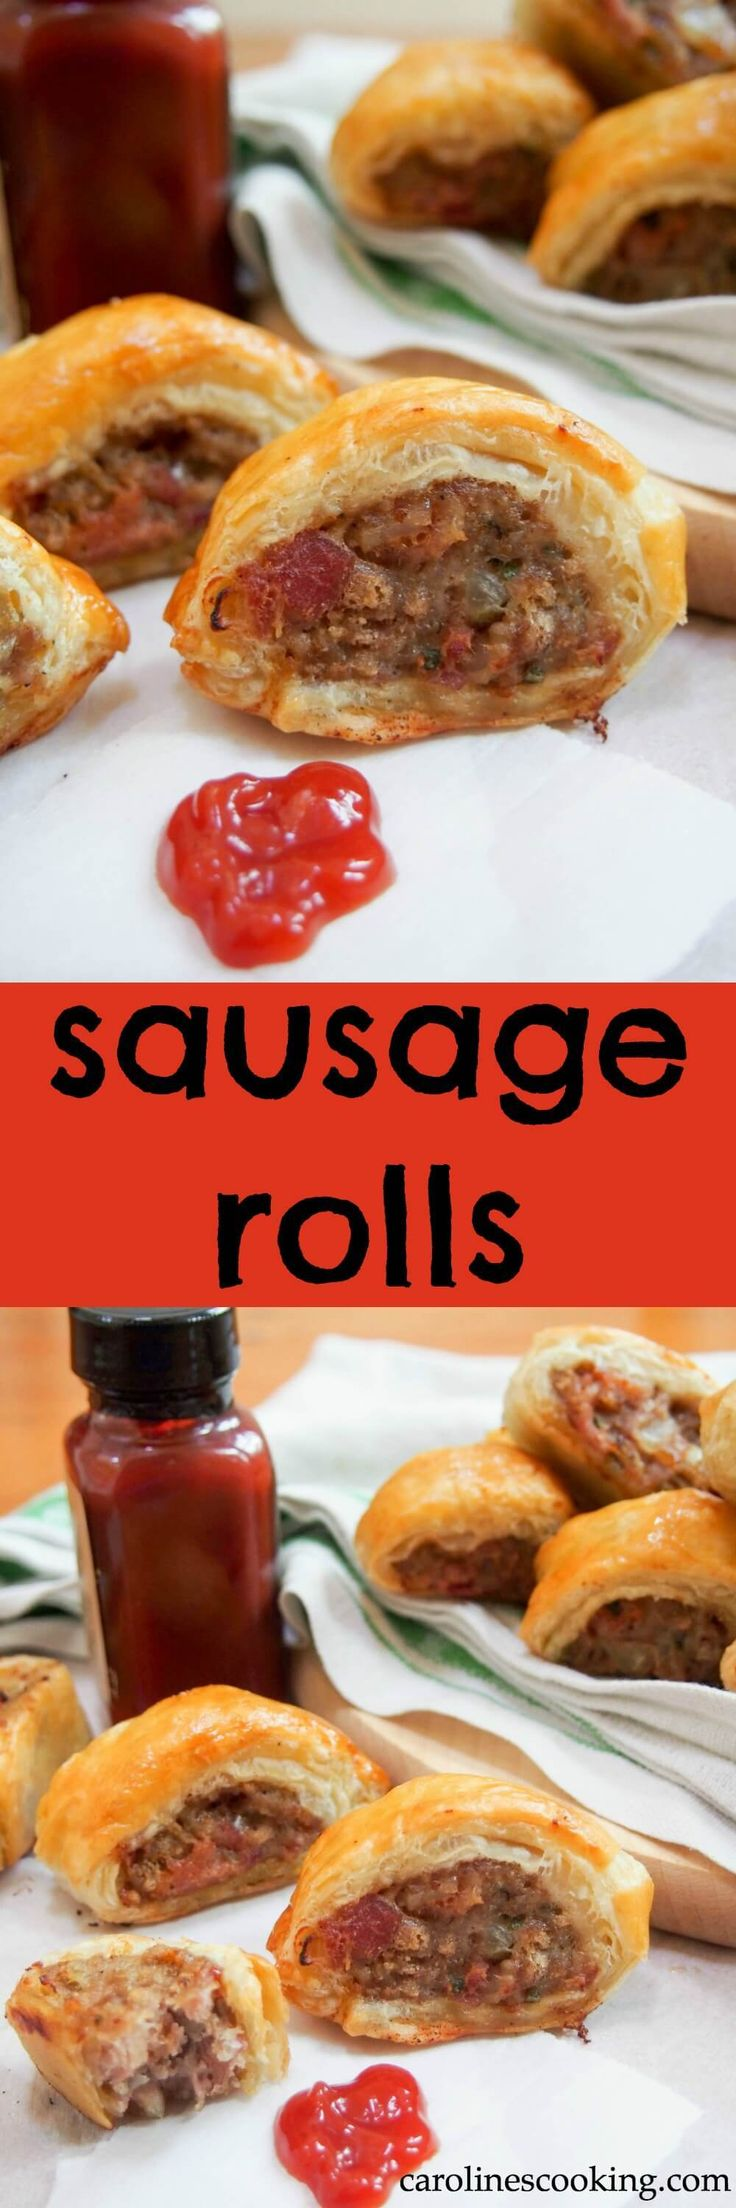 Sausage rolls are a British classic, whether late night snack or party appetizer. Comforting and even better when you make them yourself! (includes how-to video)